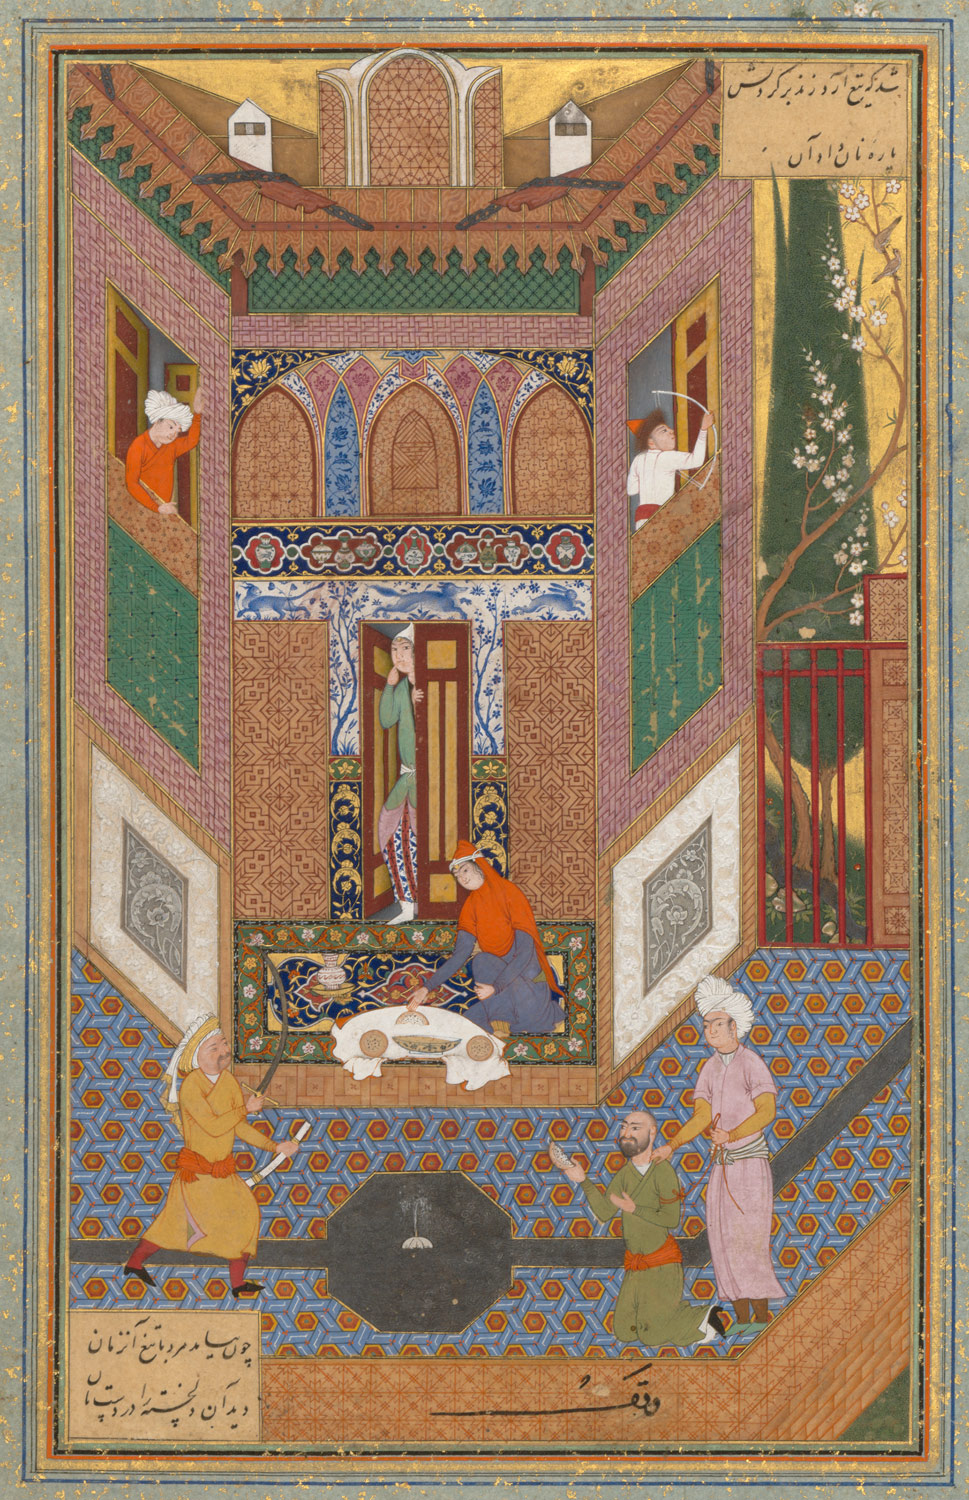 A Ruffian Spares the Life of a Poor Man, Folio 4v from a Mantiq al-tair (Language of the Birds)